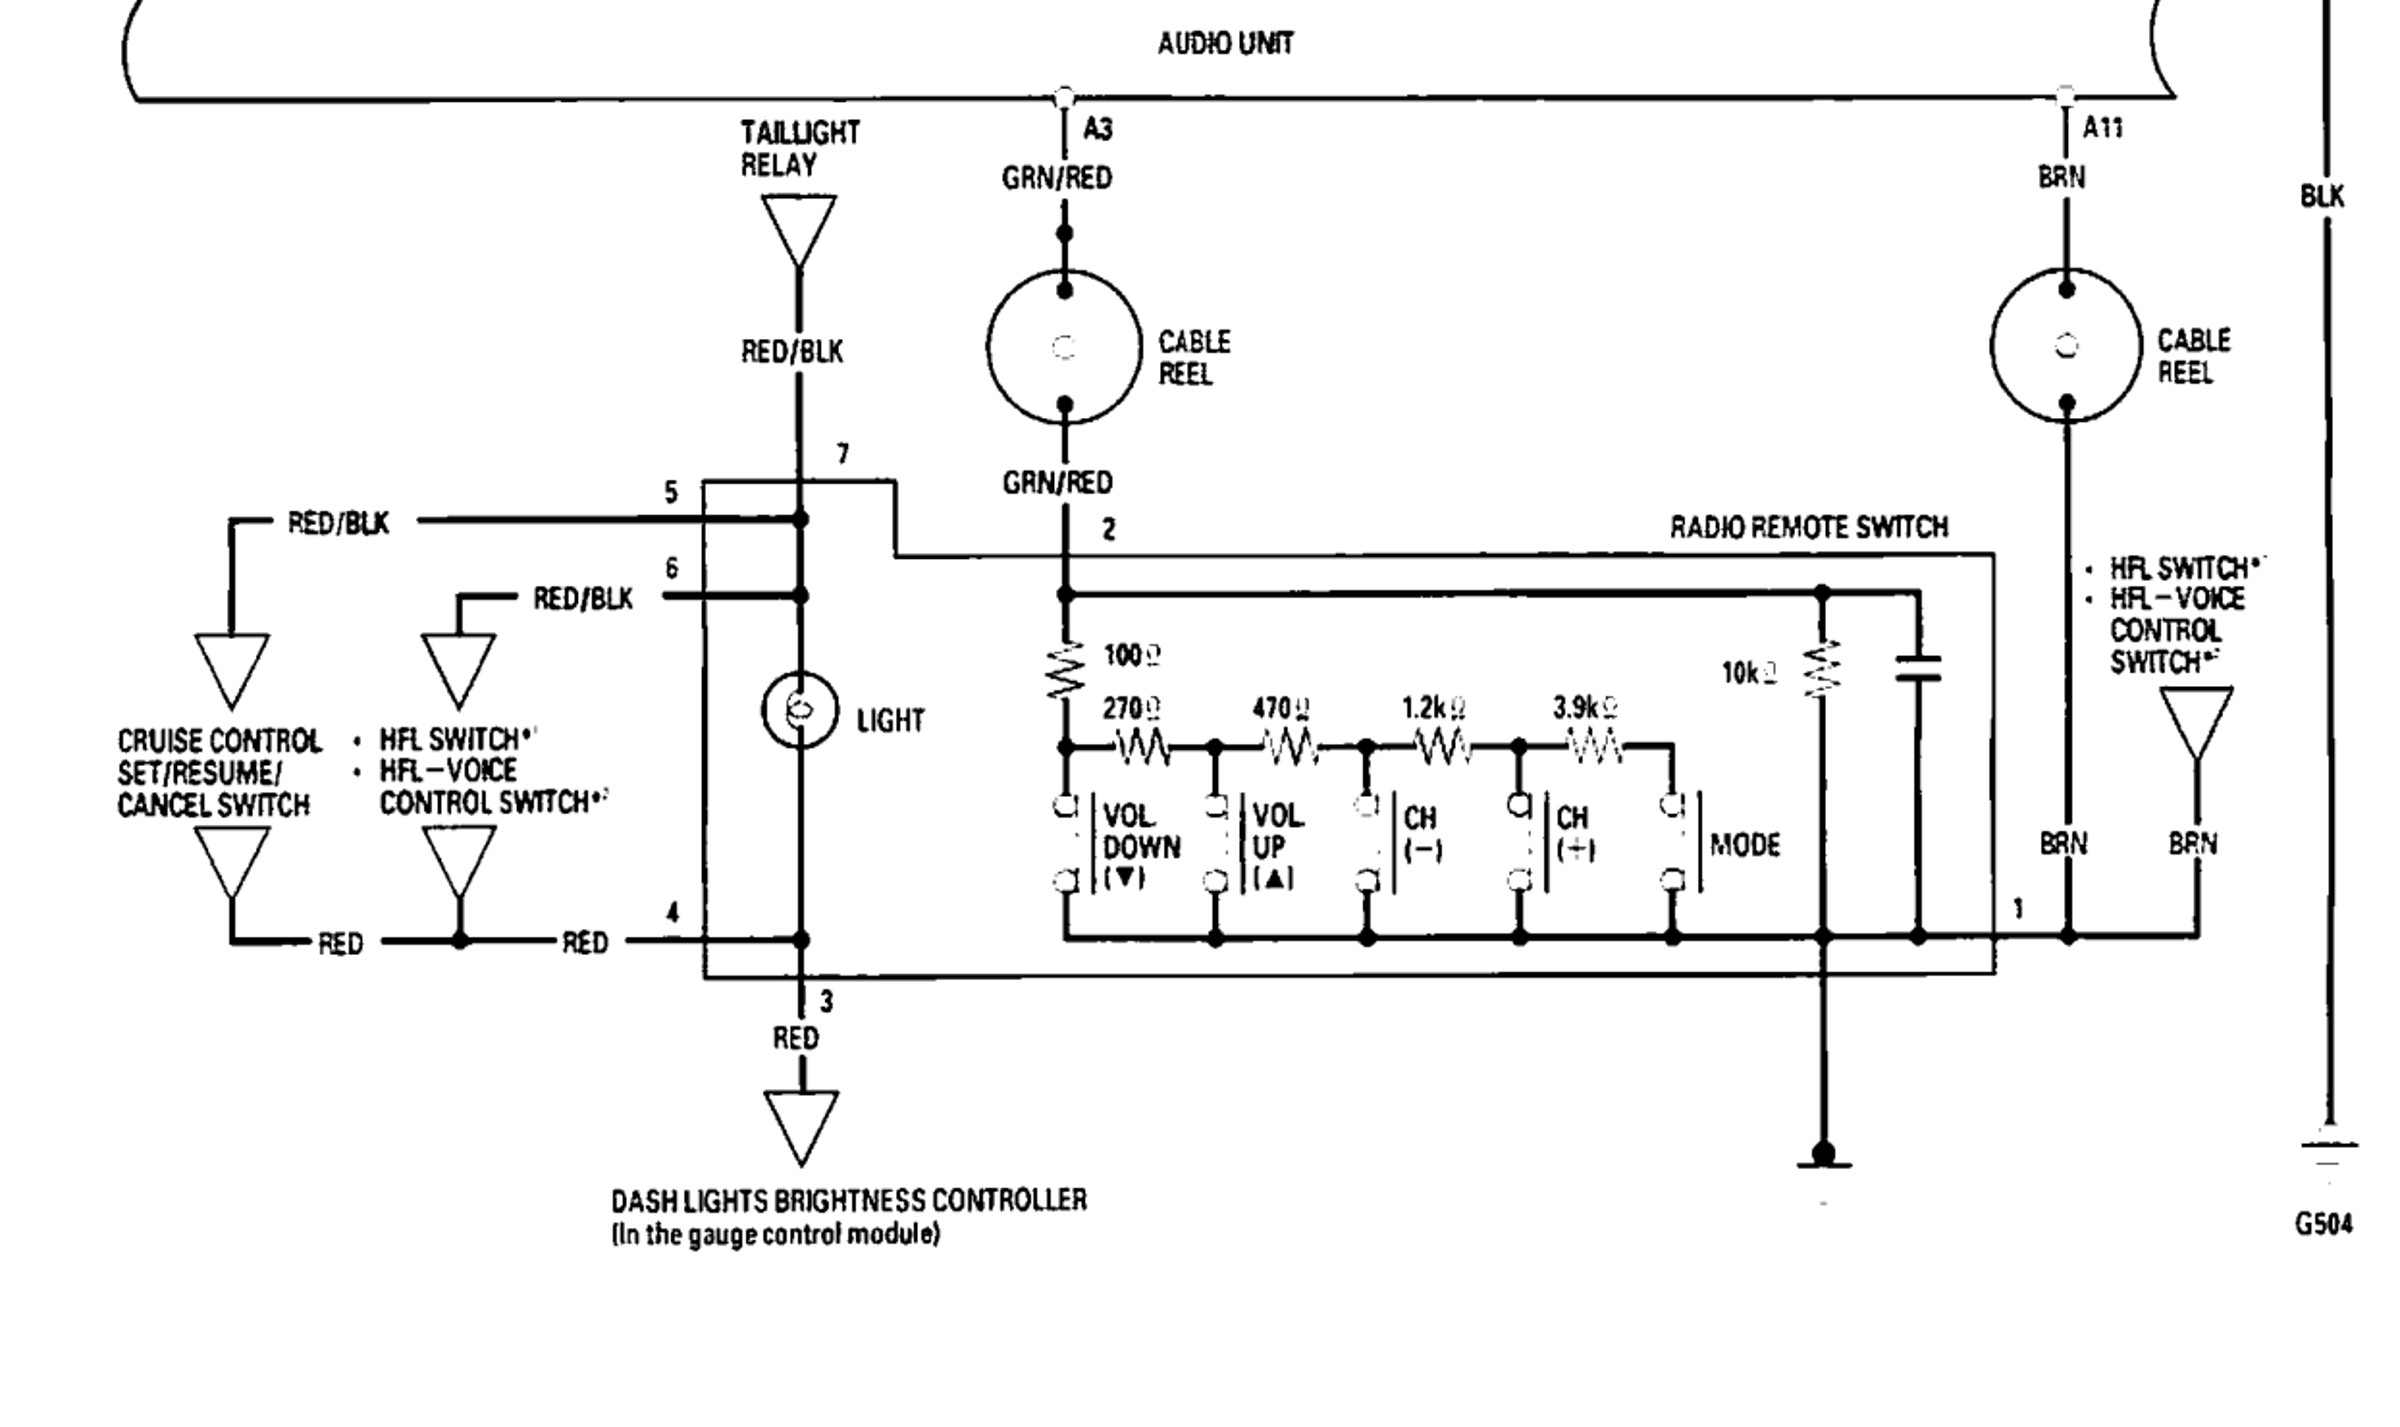 Unidigi Schematics Usb Interface